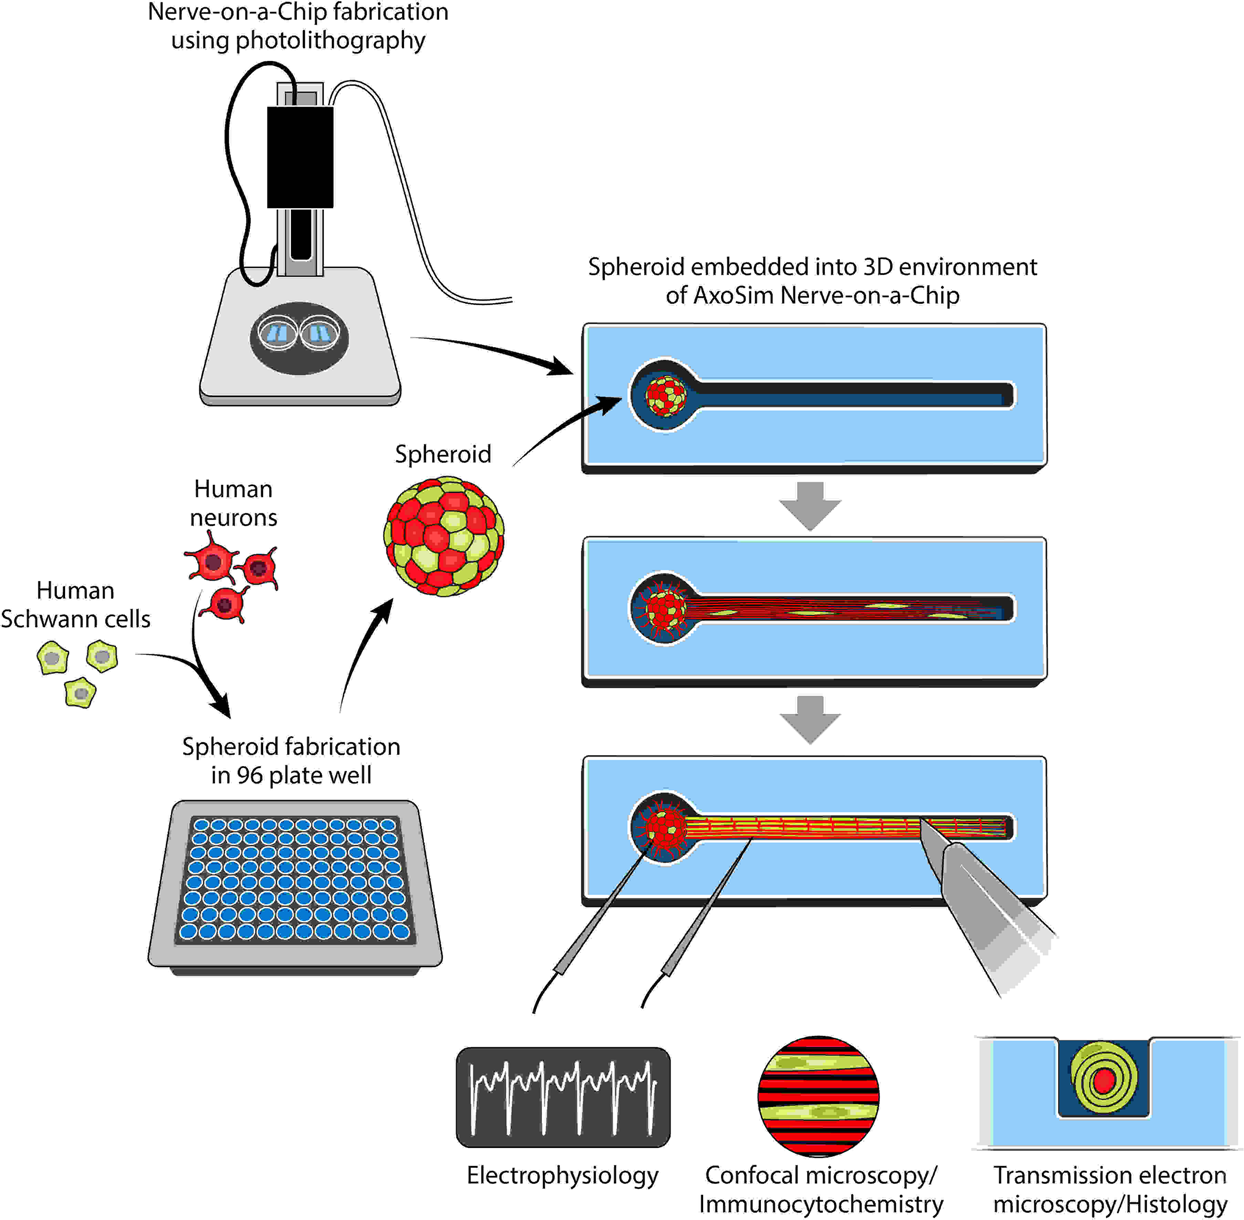 Engineering a 3D functional human peripheral nerve in vitro using